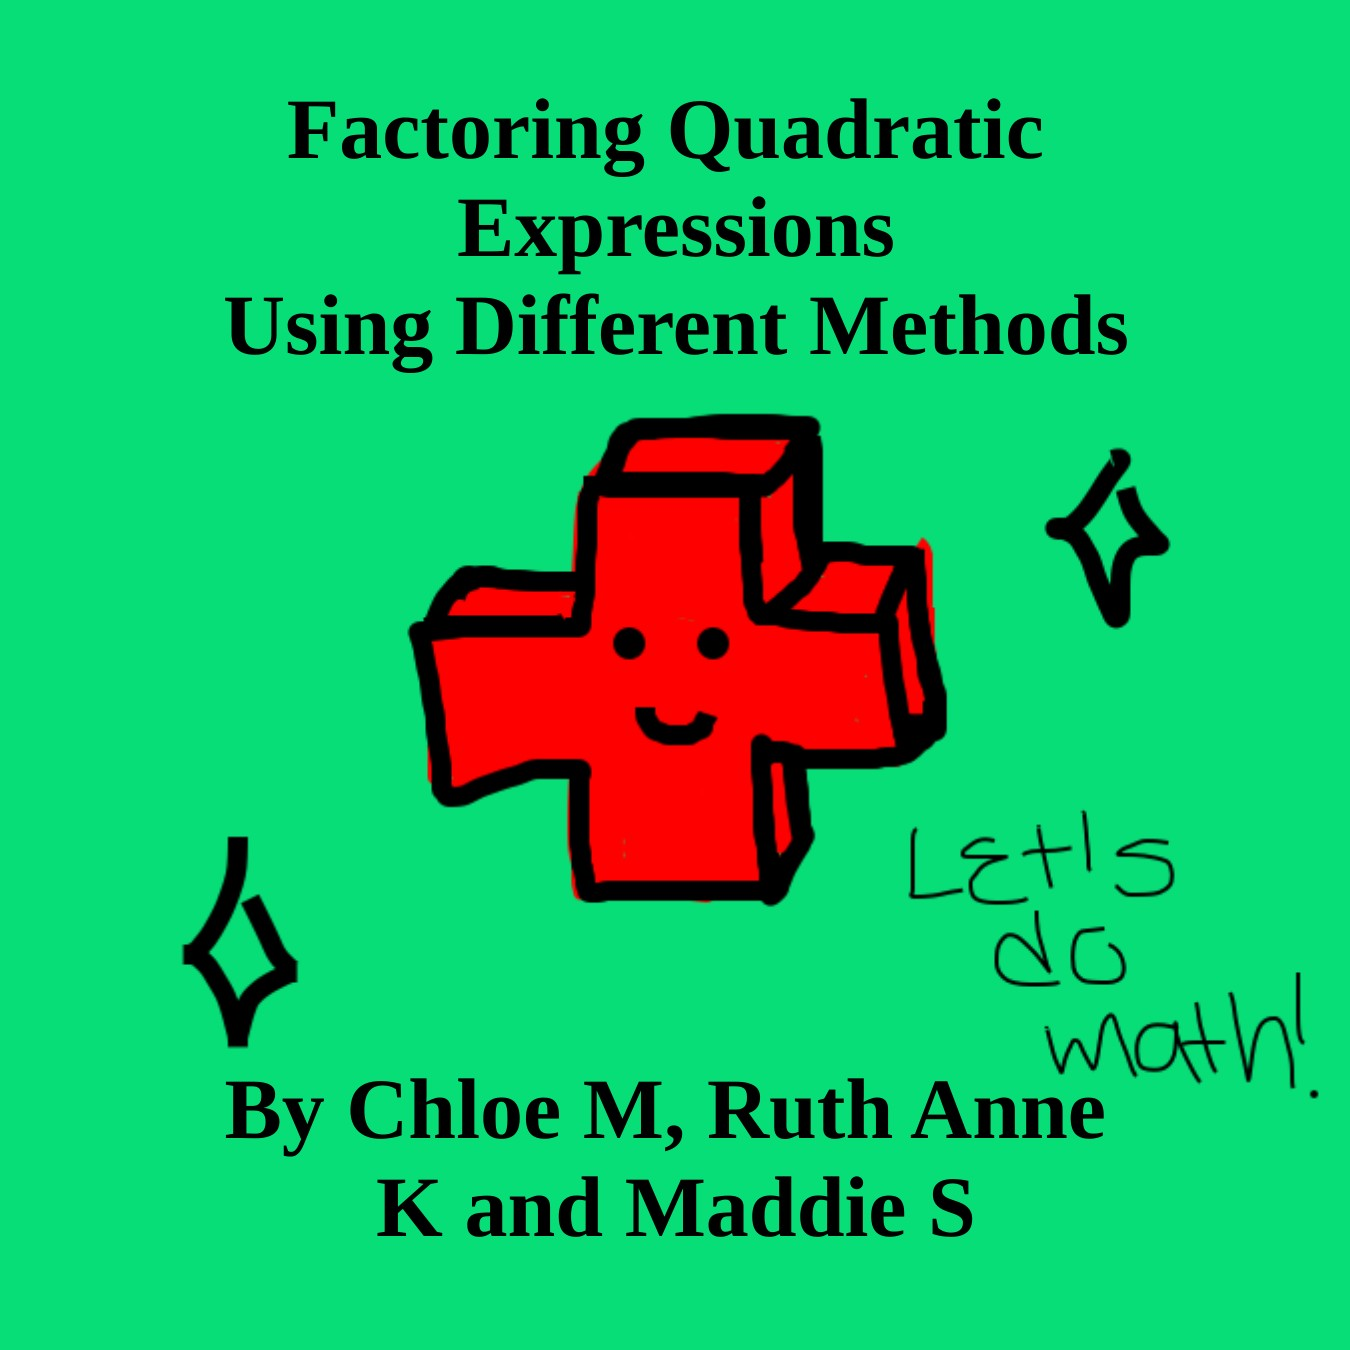 Factoring Quadratic Expressions Using Different Methods